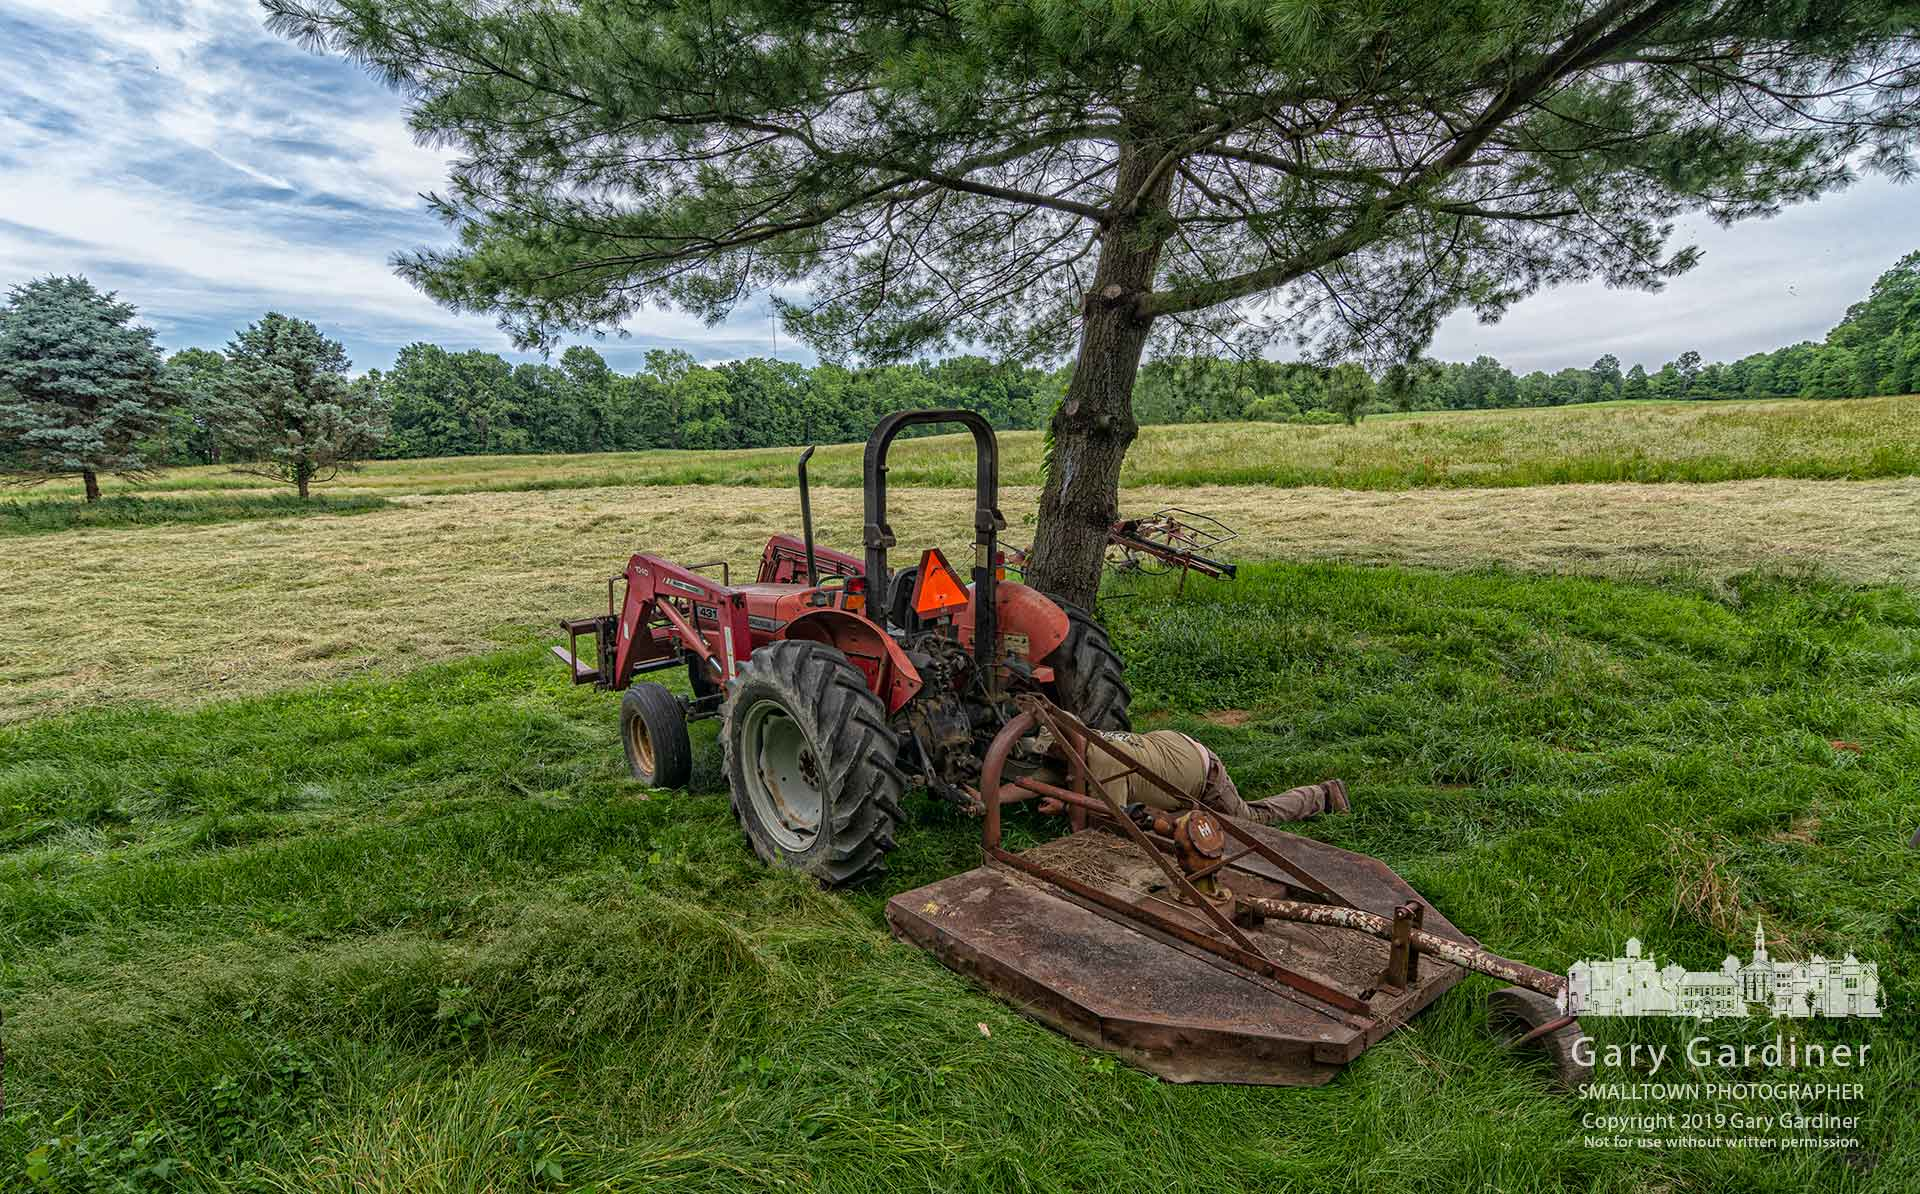 Farmer Kevin Scott attaches a bush hog to his tractor as he prepares to cut the grass around the Sharp Home and hay field on Africa Road. My Final Photo for June 7, 2019.